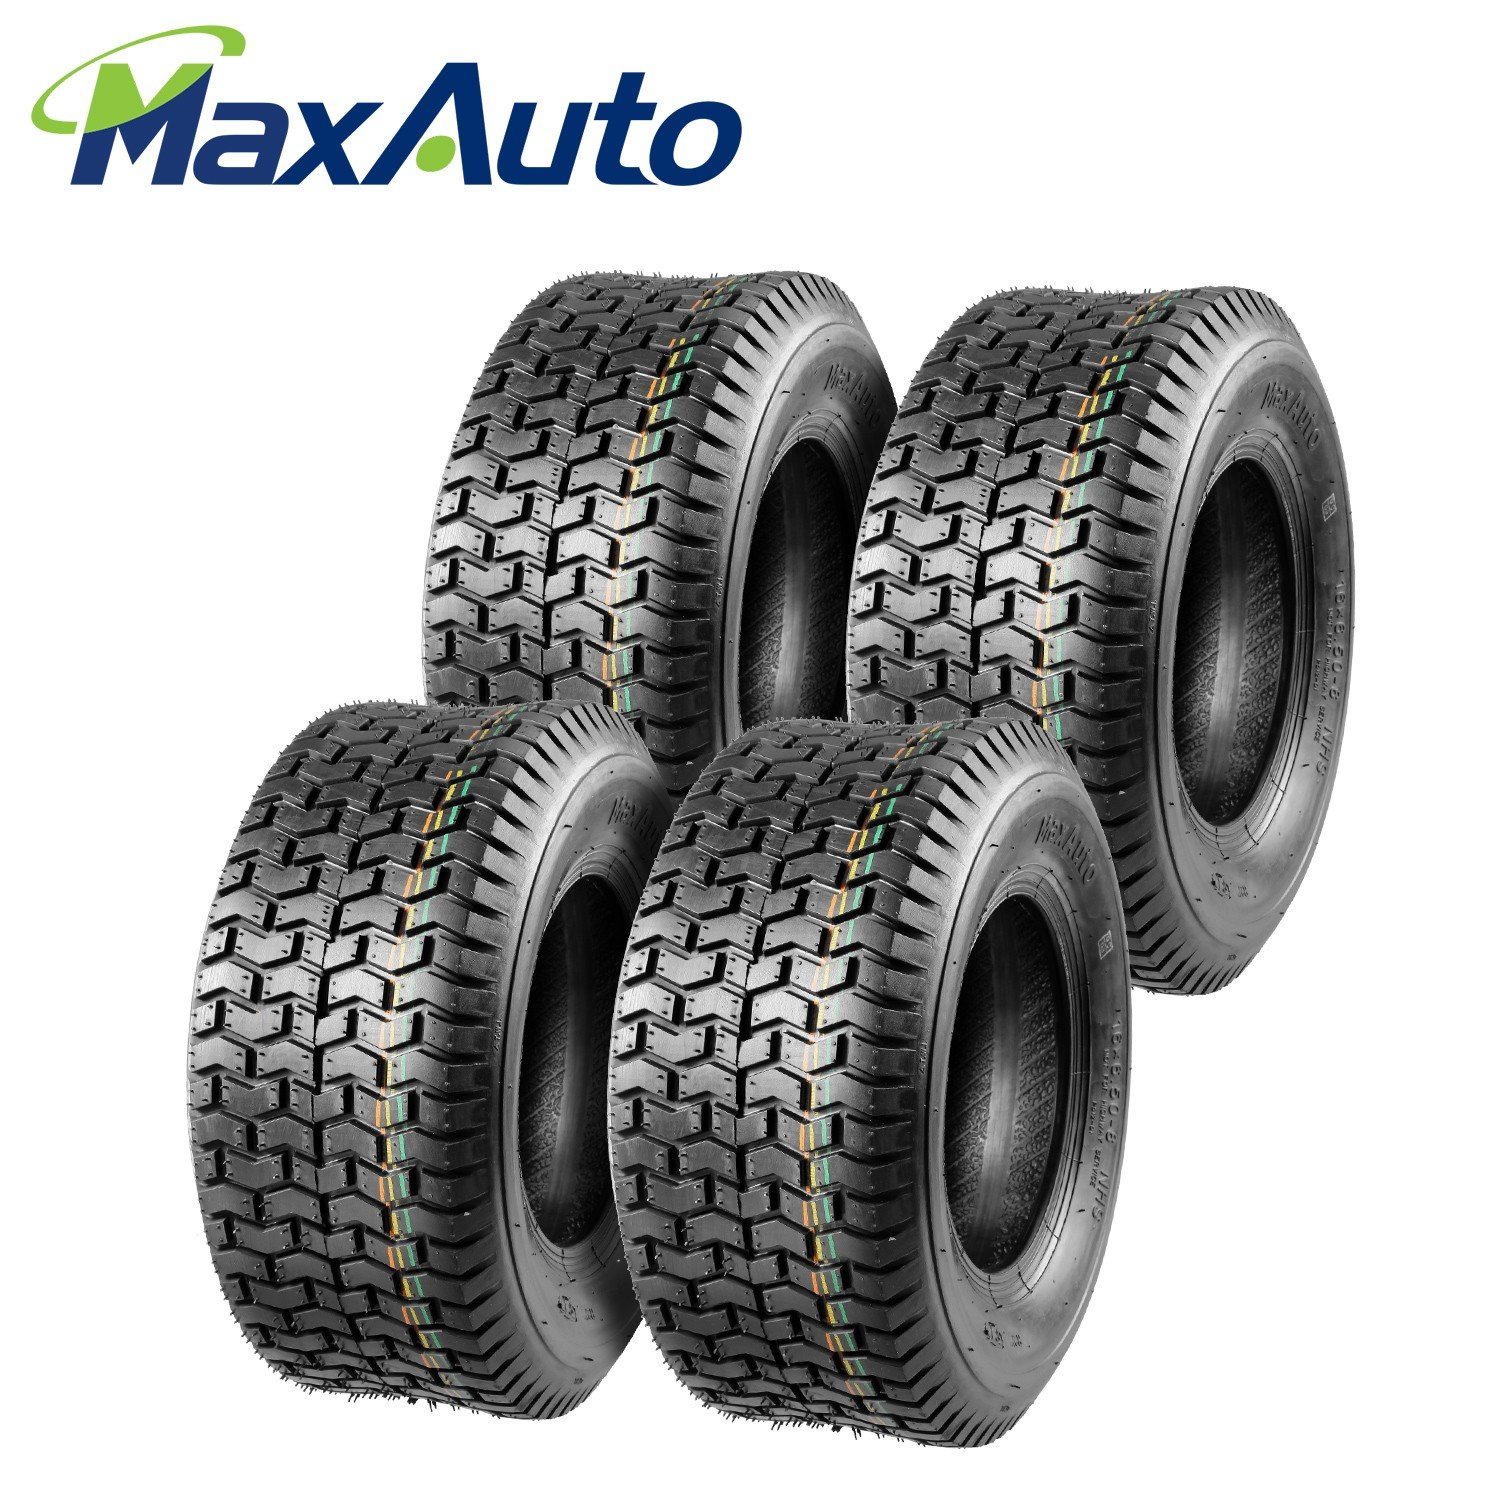 Set of 2 16x6.50-8 16/6.50-8 Turf Tires 4Ply Tubeless for Garden Tractor Lawn mower PartsSquare